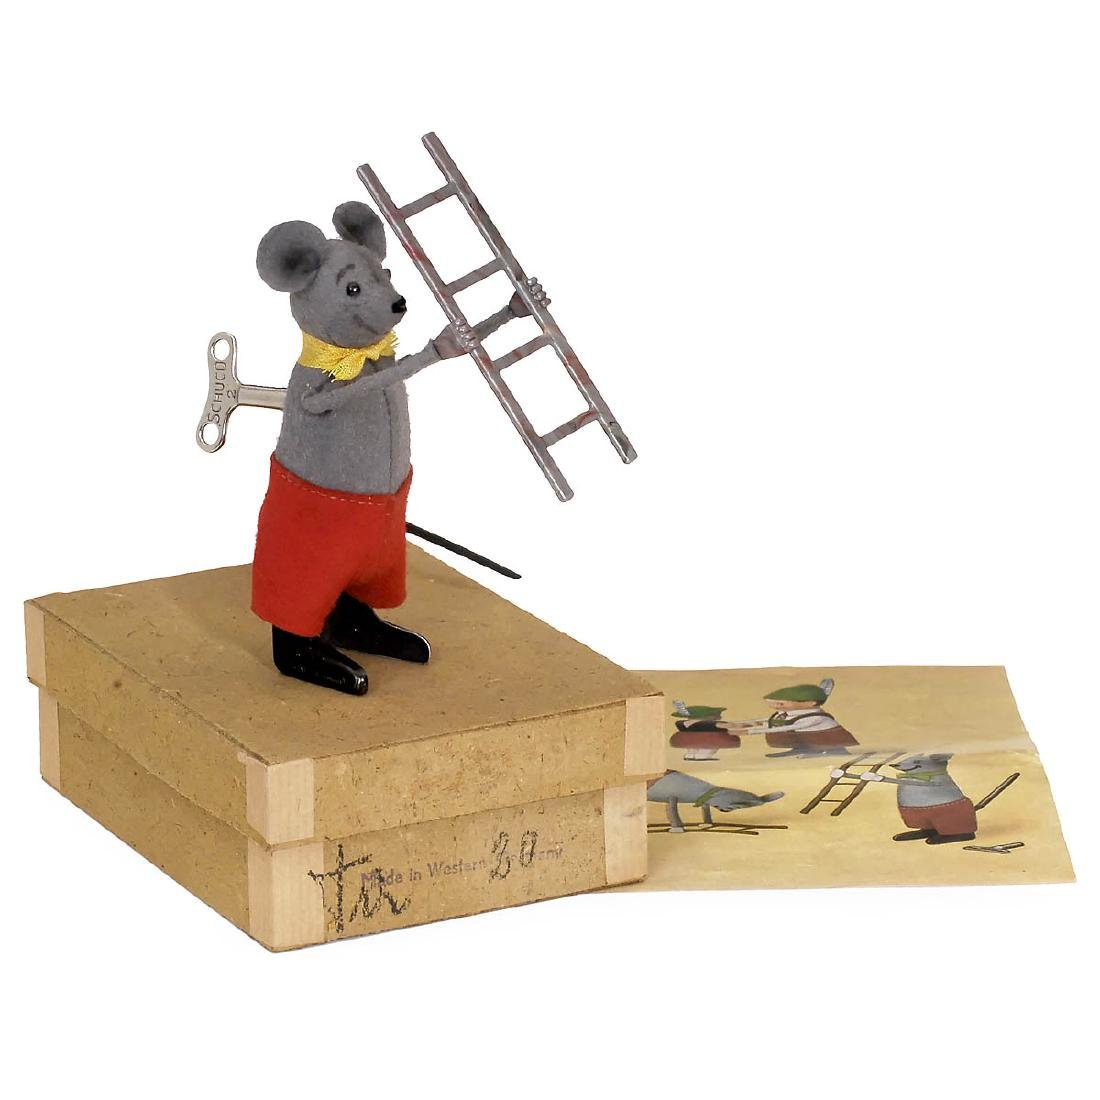 Schuco Dancing Figure Mouse with Ladder No. 959, c.